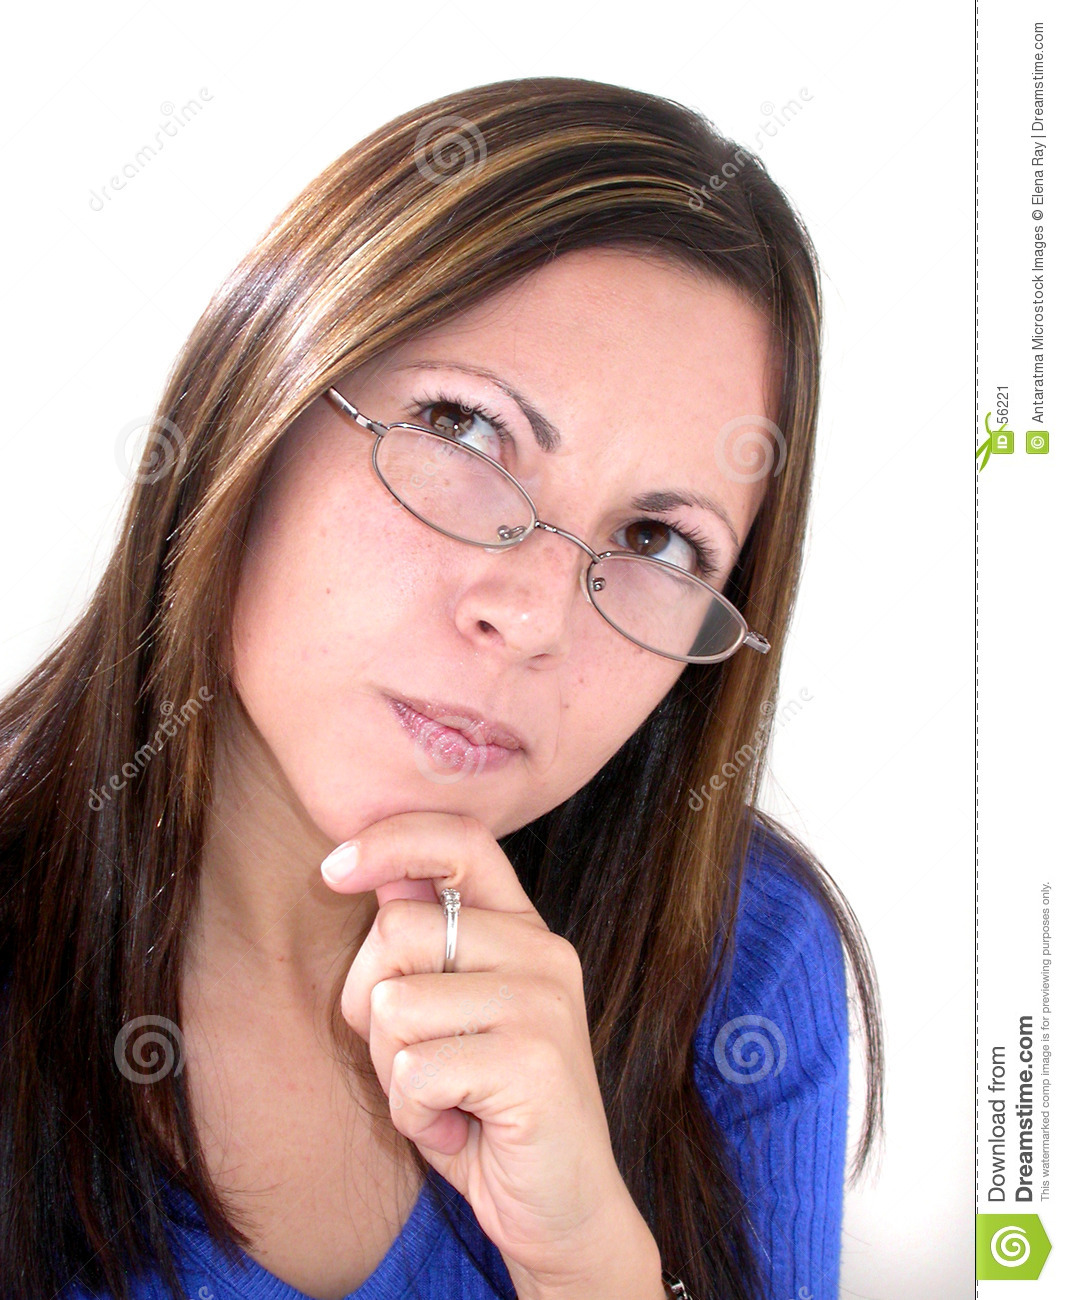 Young woman in glasses pondering, thinking,formulating